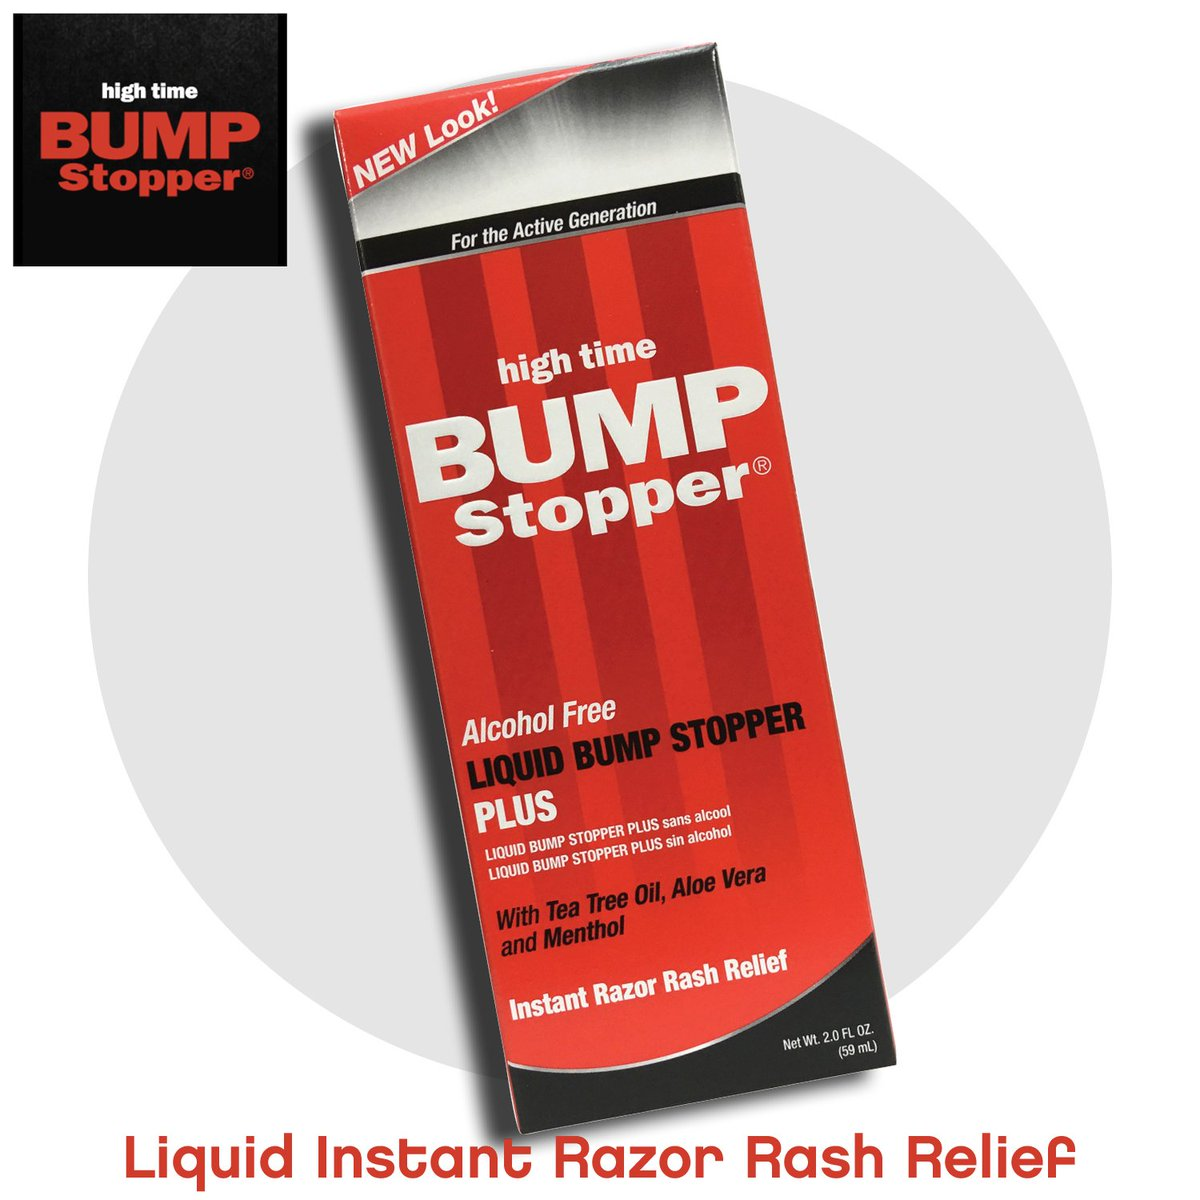 Take #Control of those pesky #Bumps! Enjoy the #Best @Bumpstoppr has to offer in #Liquid form!#skincare #Shave  http:// ow.ly/SgbP30exh7s    pic.twitter.com/dJZew74dKn